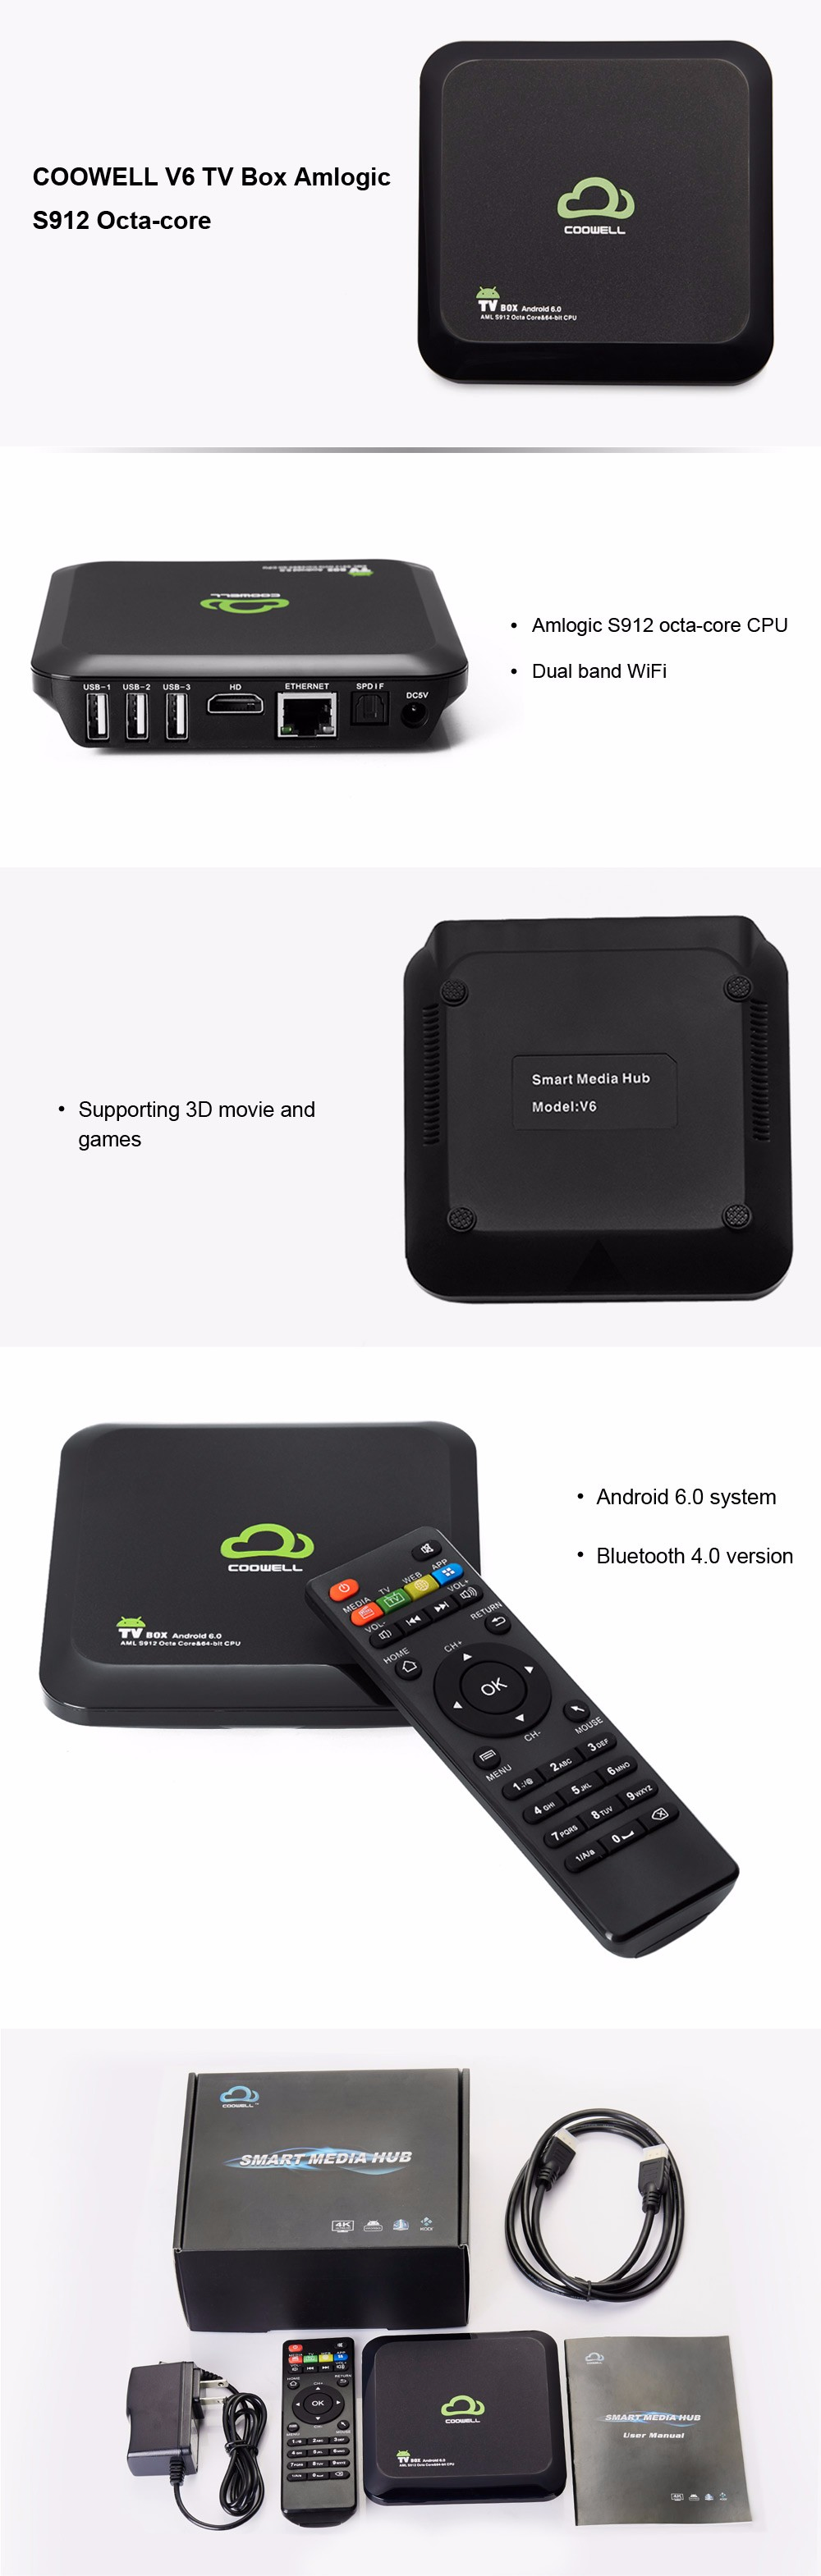 COOWELL V6 Android 6.0 TV Box with Amlogic S912 Octa-core CPU Supporting Bluetooth 4.0 Dual Band WiFi